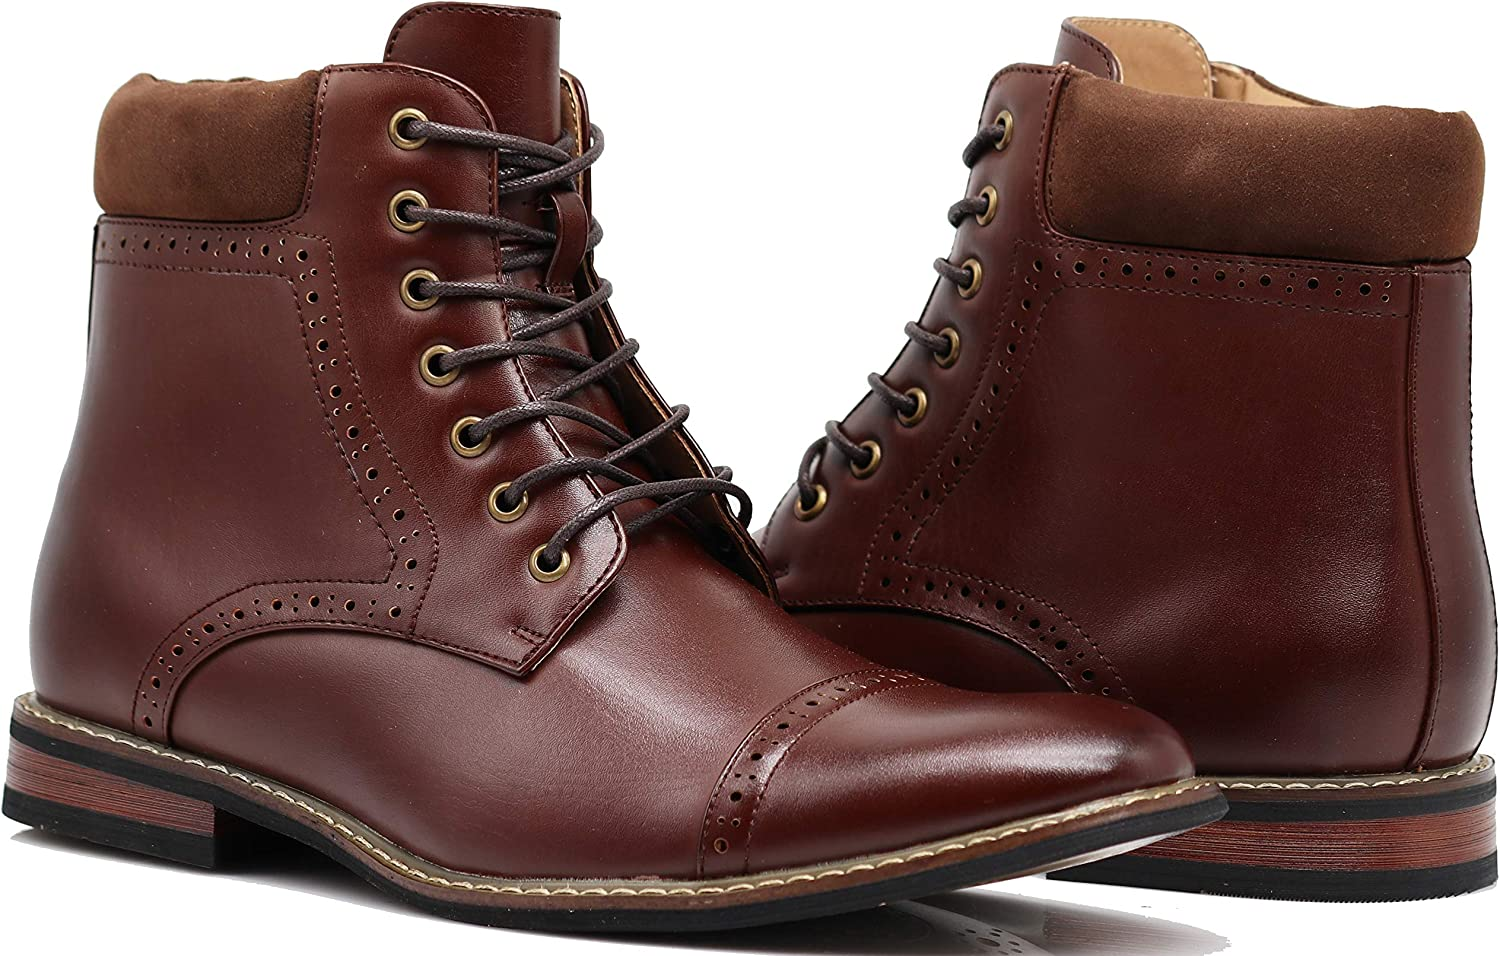 OTW4N Men's Chukka Ankle Dress Boots Captoe for Winter Lace Up Oxfords Boots